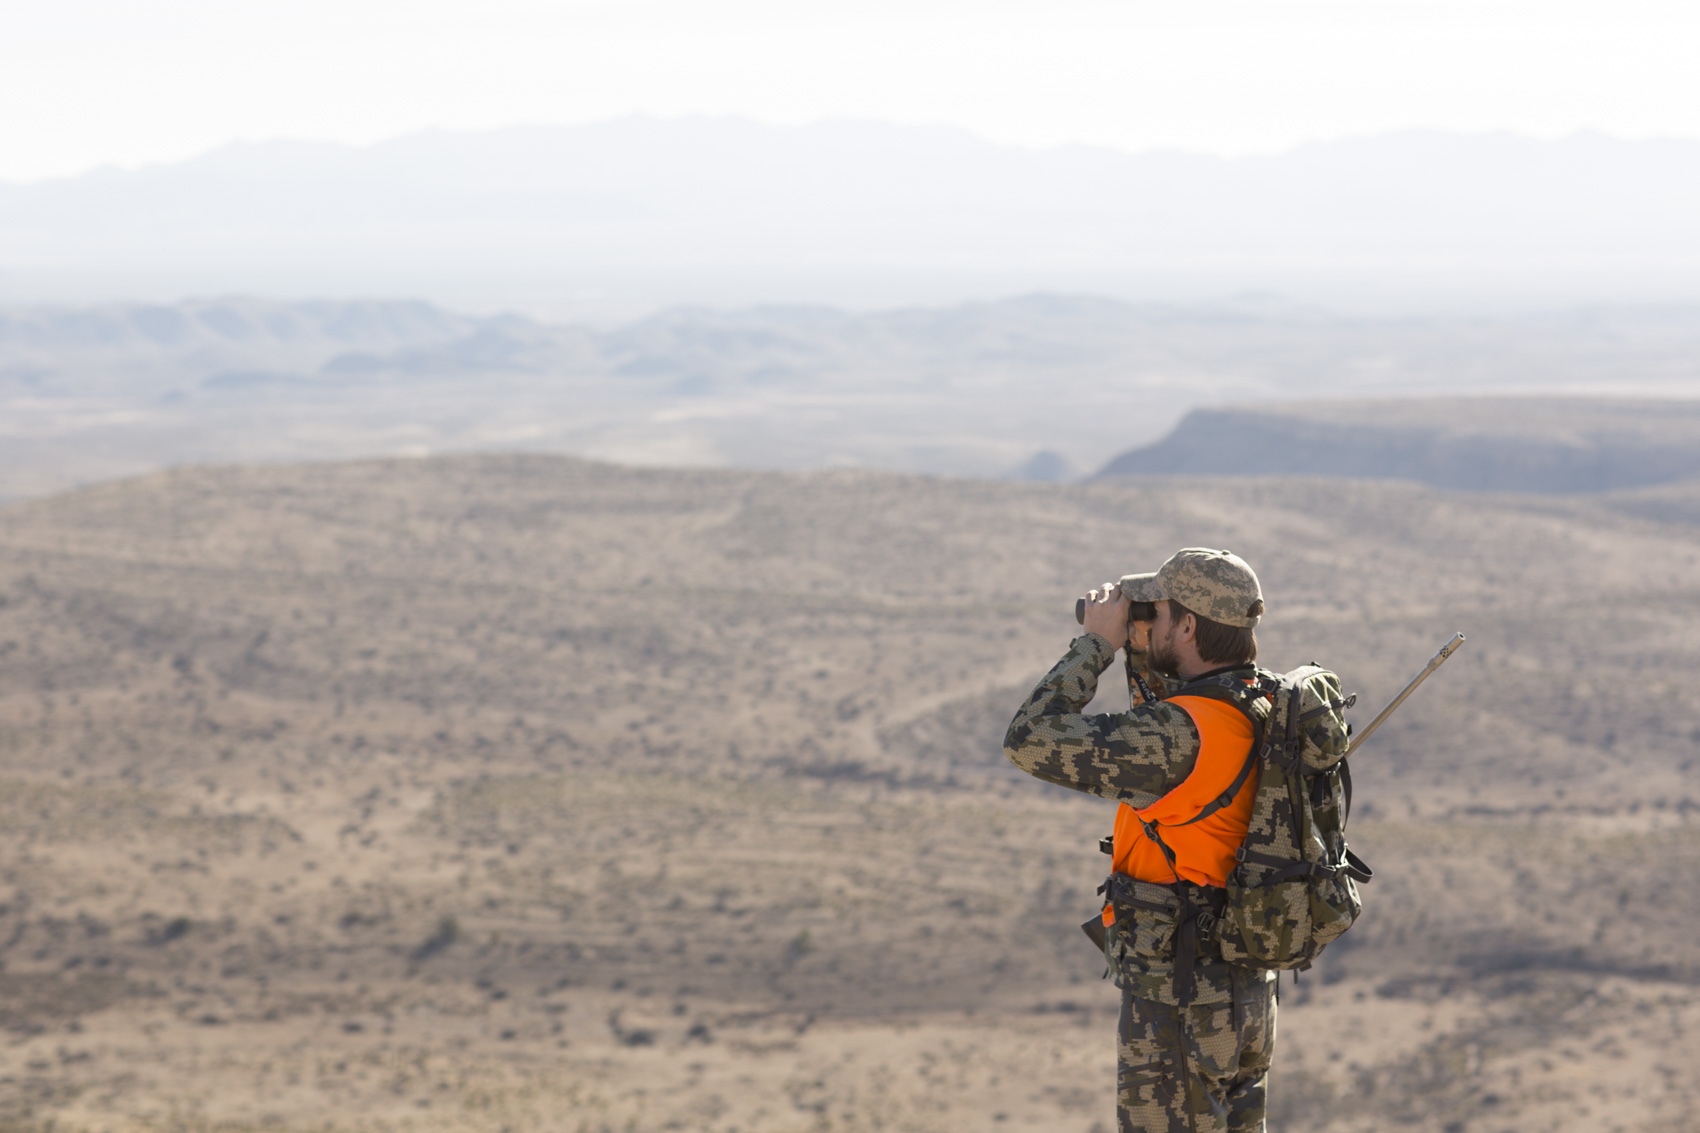 Quest for Aoudad - Bring Enough Glass!